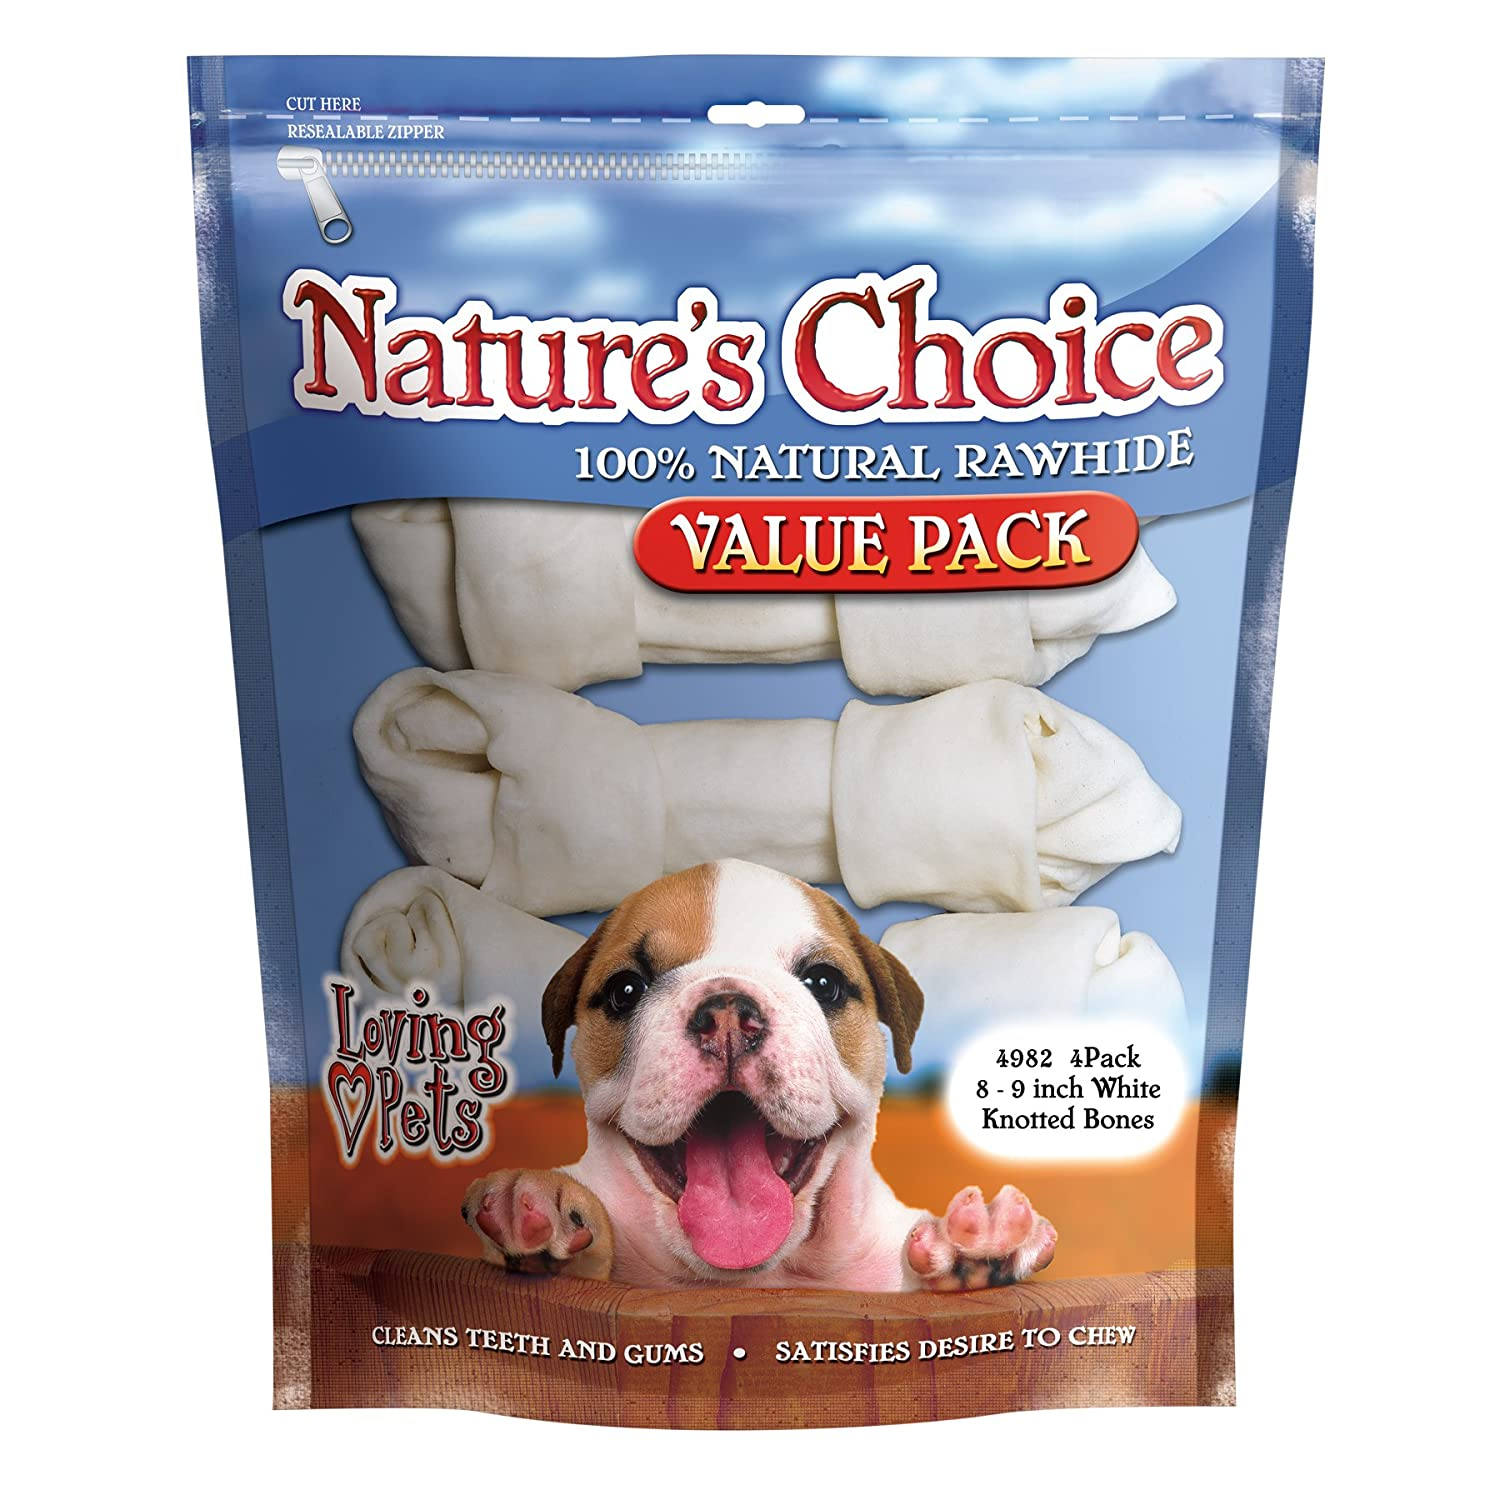 8-9-Inches, 4 Pack Loving Pets Nature'S Choice 100-Percent Natural Rawhide White Knotted Bones Dog Treat, 8-9-Inches, 4 Pack